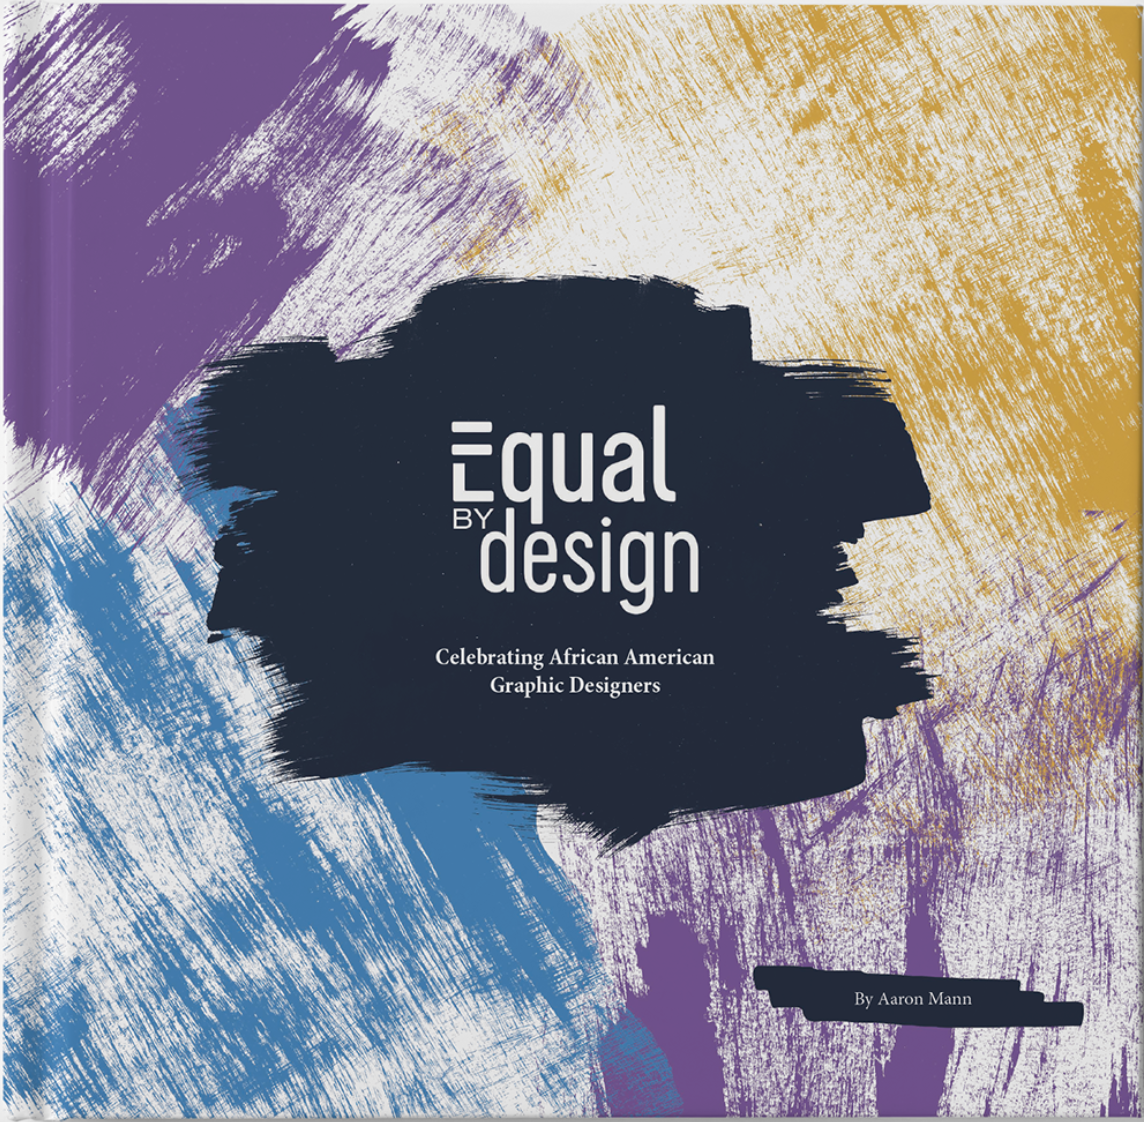 Mann, Aaron. Equal by Design (Thesis)